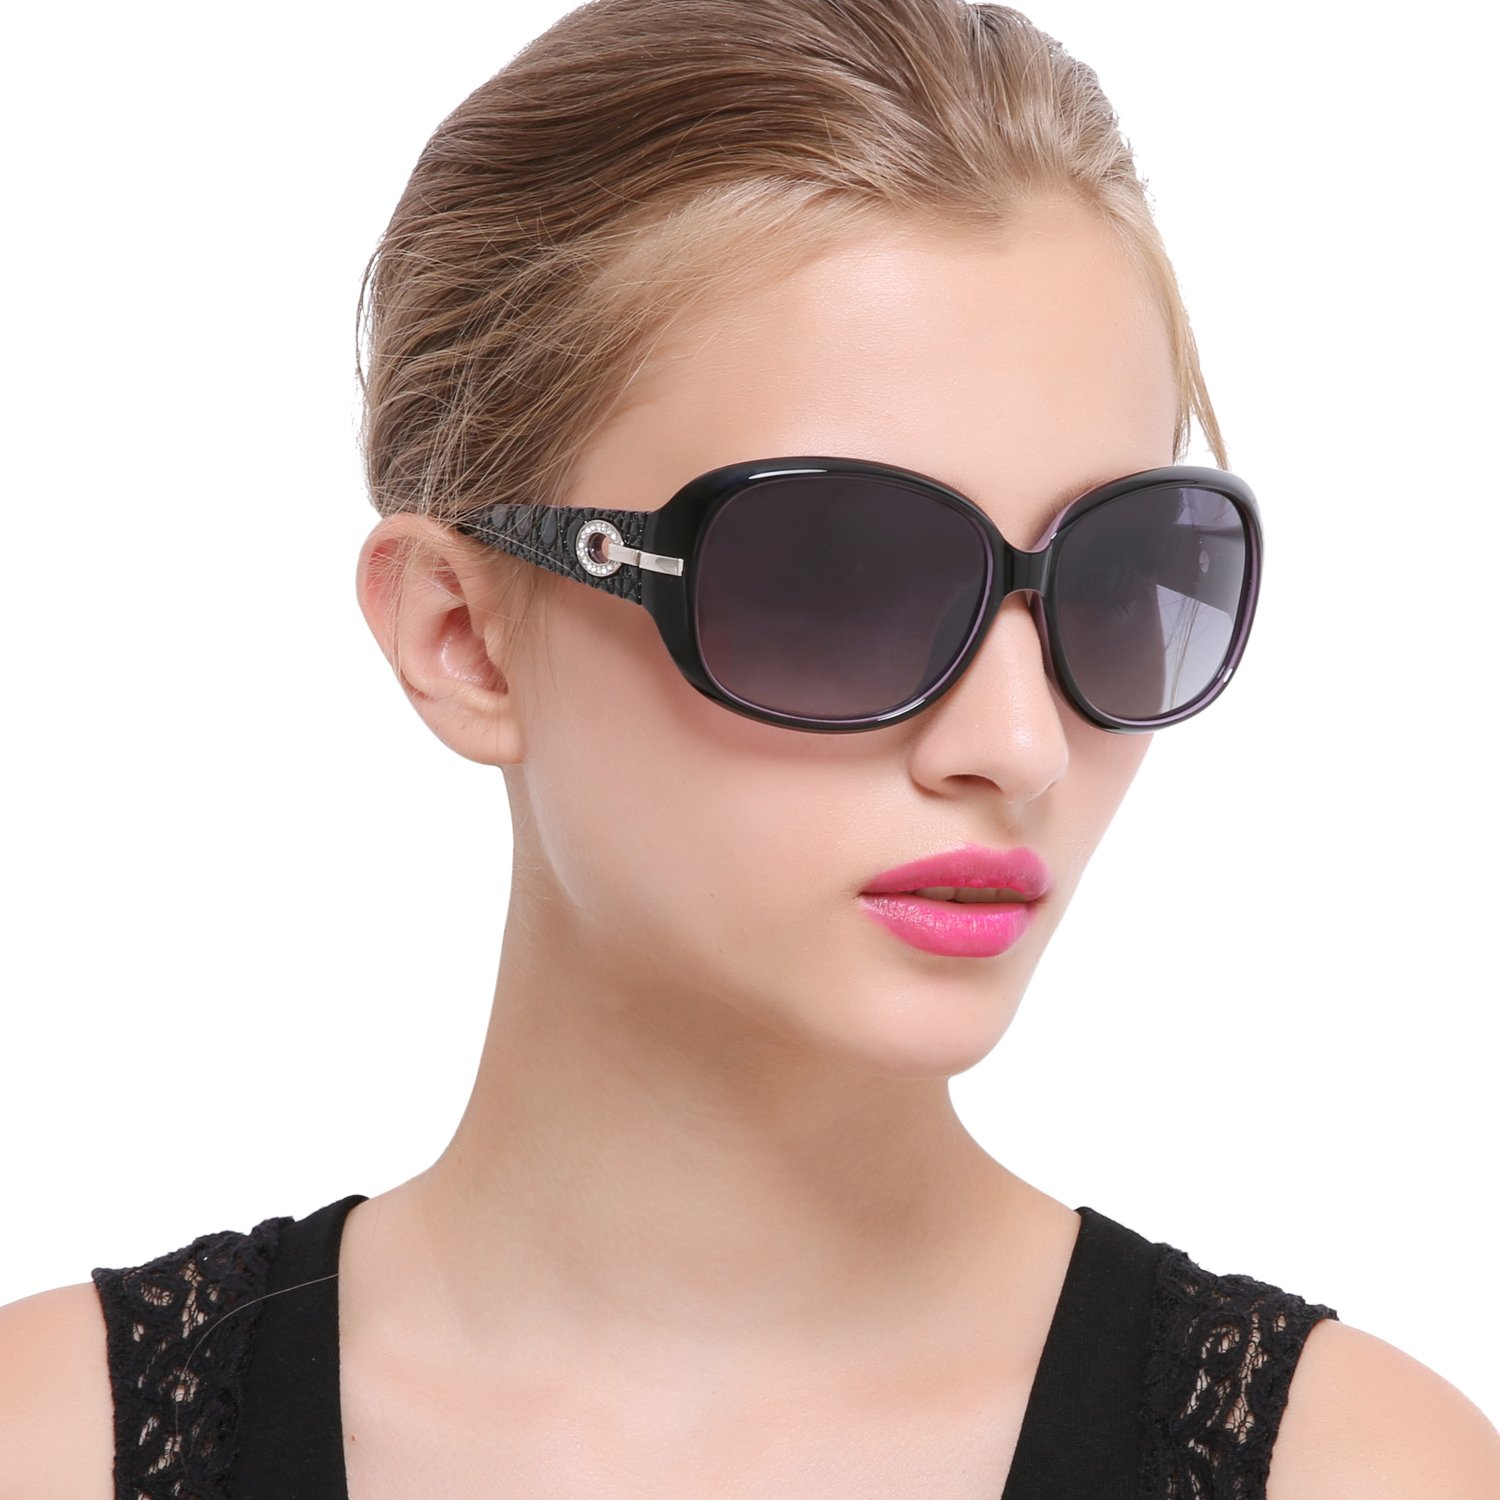 4d5e1fa00985 Joopin Women Polarized Sun Glasses Butterfly Big Frame Brand Sunglasses (Black  Simple package Black)  Amazon.in  Clothing   Accessories